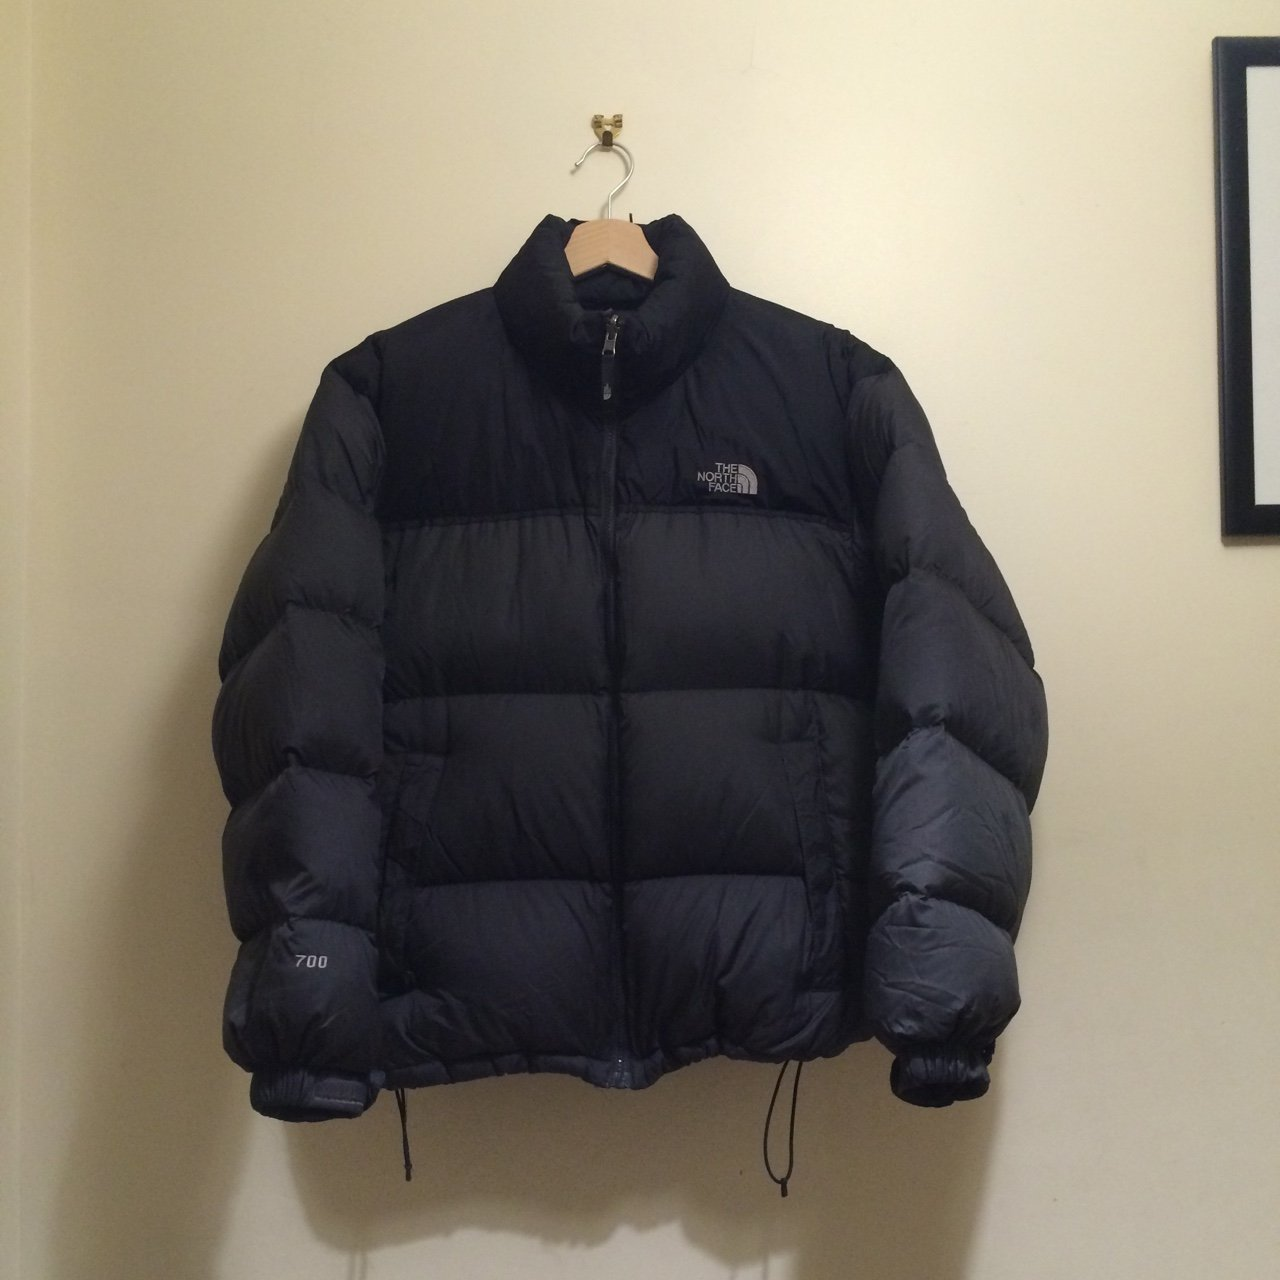 ... promo code for genuine the north face nuptse down 700 coat puffer  jacket depop fee08 36fb1 e71a4a35c